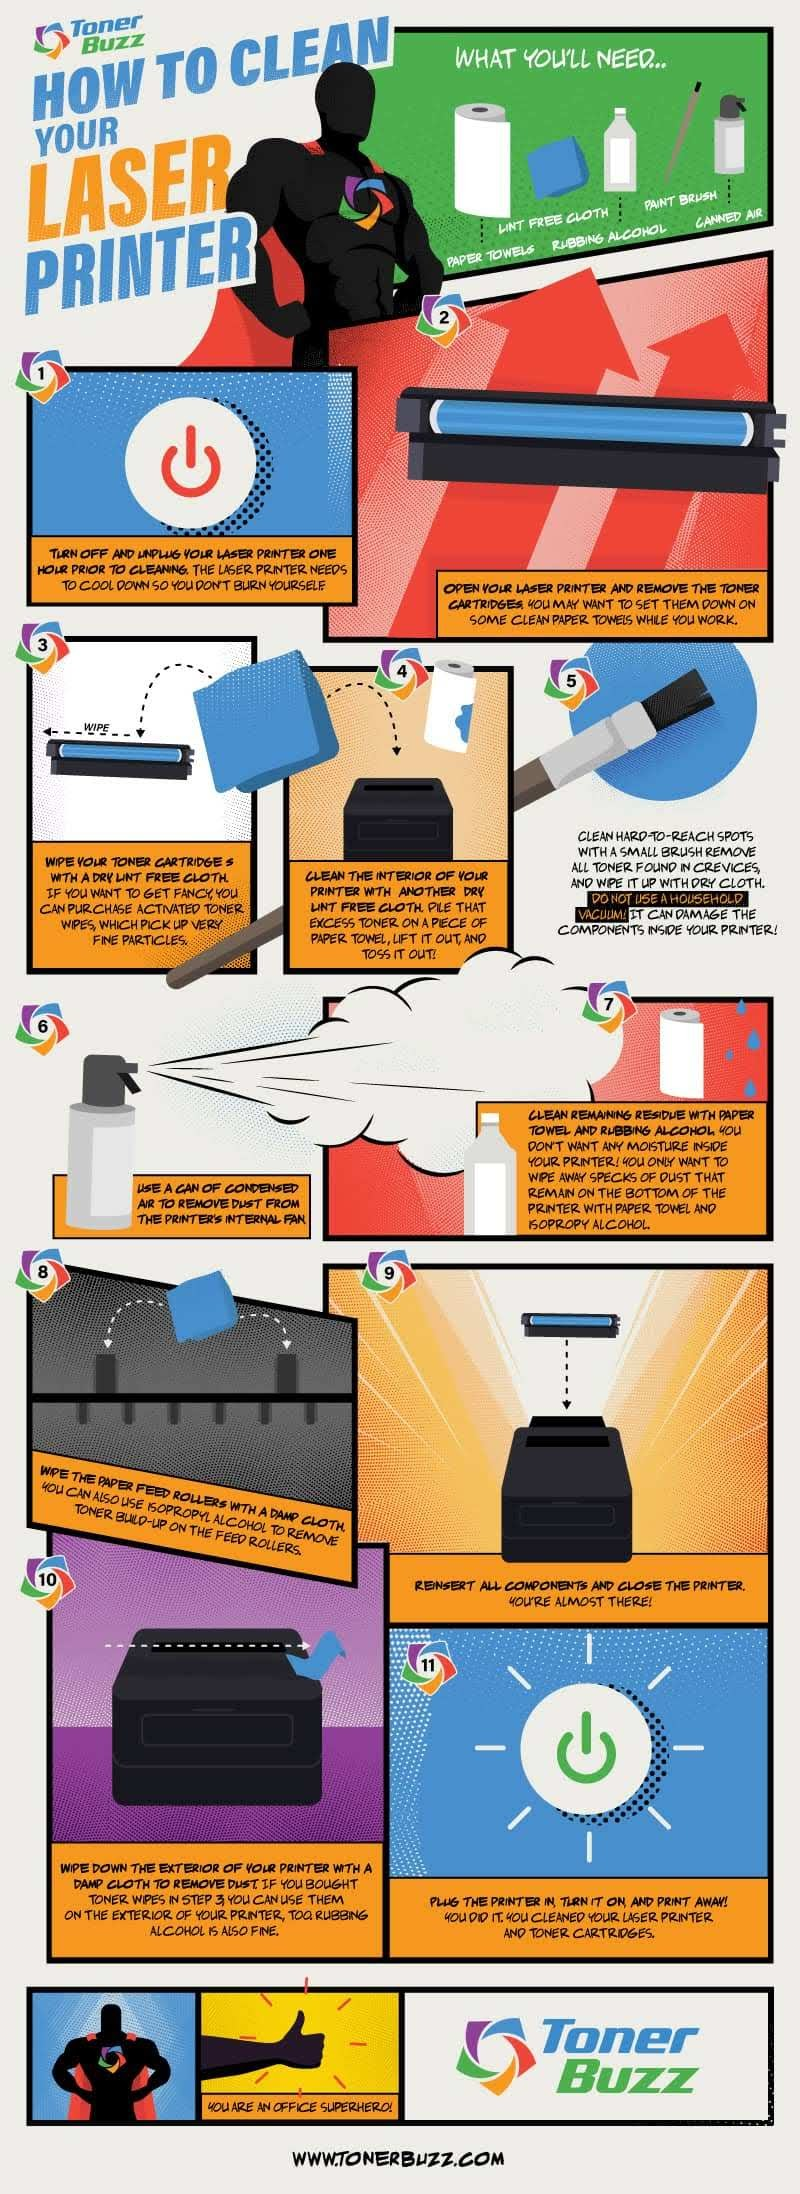 How to Clean Your Laser Printer and Toner Cartridges #infographic